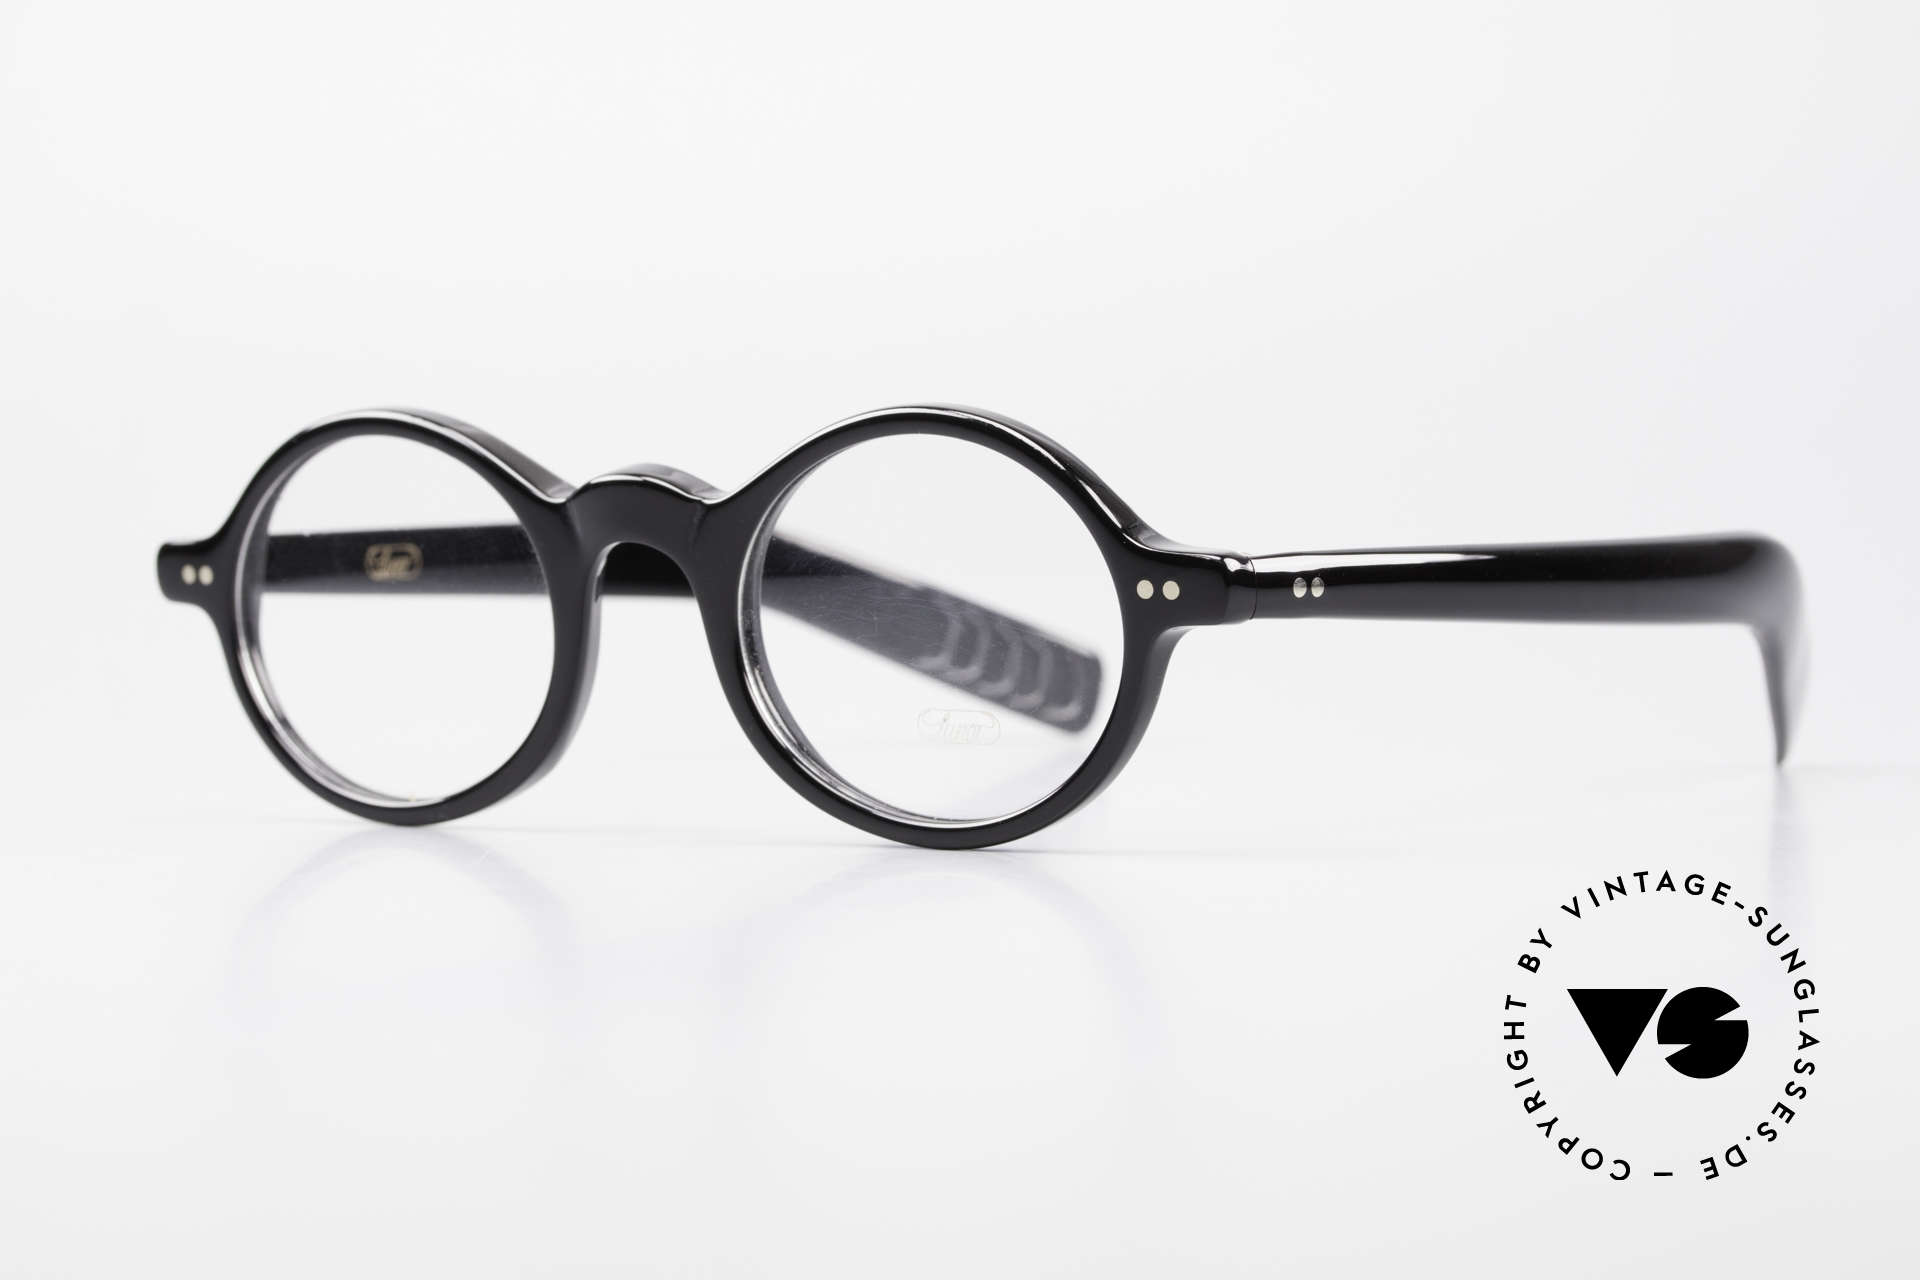 Lunor A52 Oval Eyeglasses Black Acetate, oval frame with classic coloring: black with silver rivets, Made for Men and Women